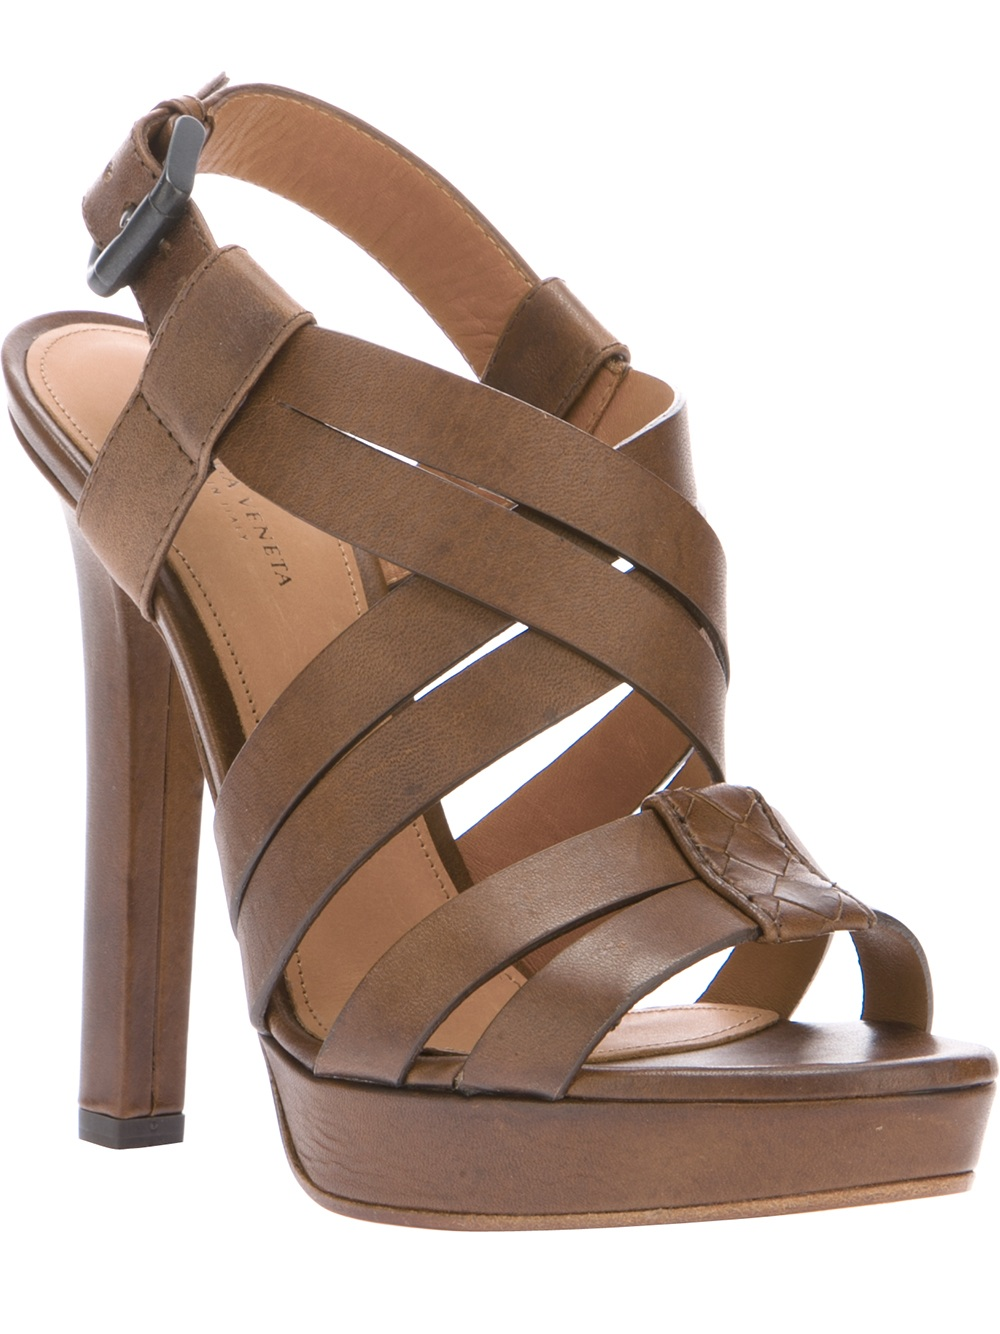 Stuart Weitzman Swiftson Suede Wedge Sandal. $ 76% off. $ - $ Free Shipping. Prada Women's Suede High Heel Boot Shoes Brown. $ Free Shipping. More Buying Choices. $ New Stuart Weitzman Ardent High Heel Boot. $ 68% off. $ - .